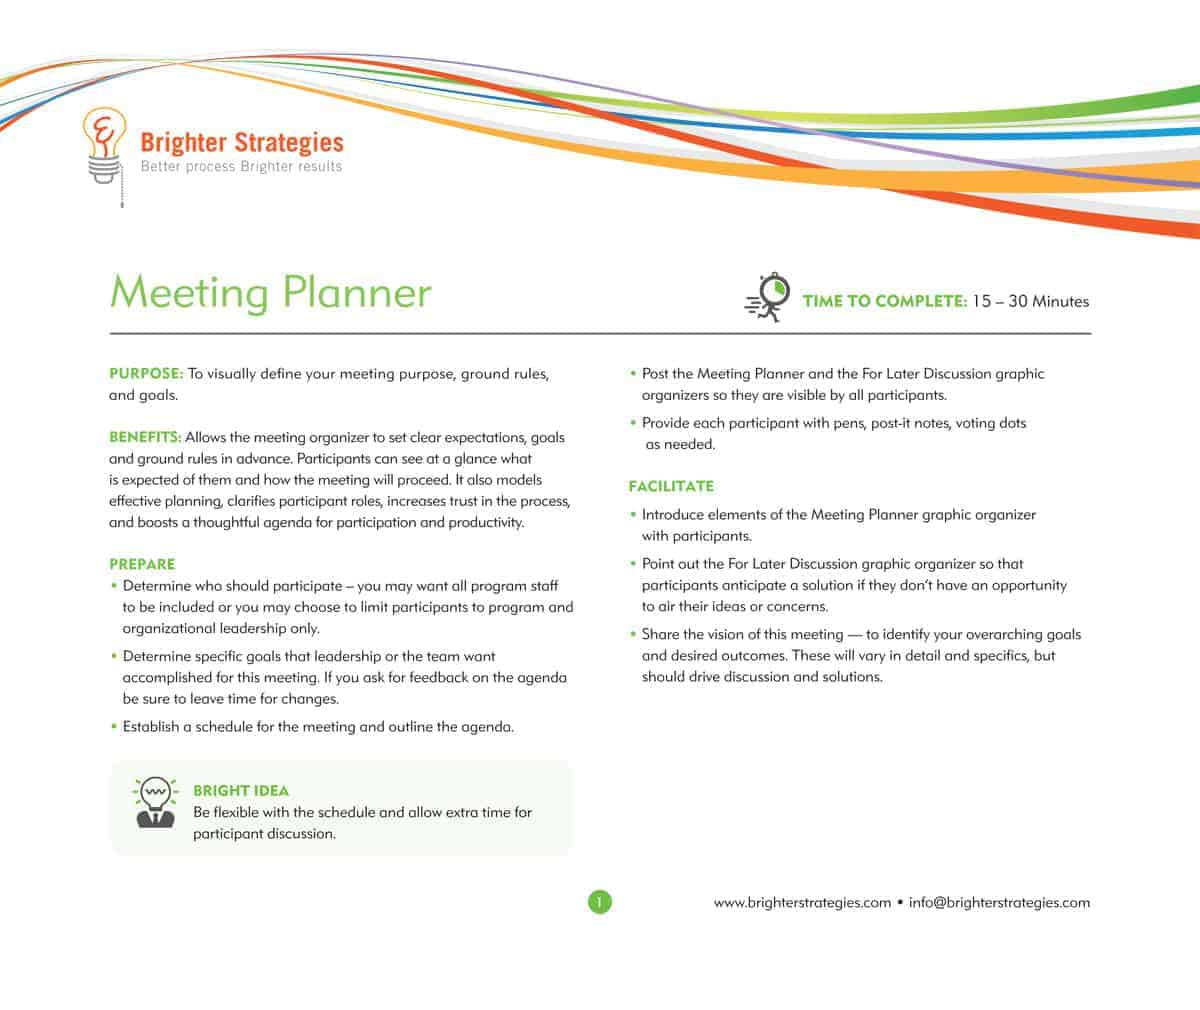 Learn the importance of having a well-rounded business meeting planner.